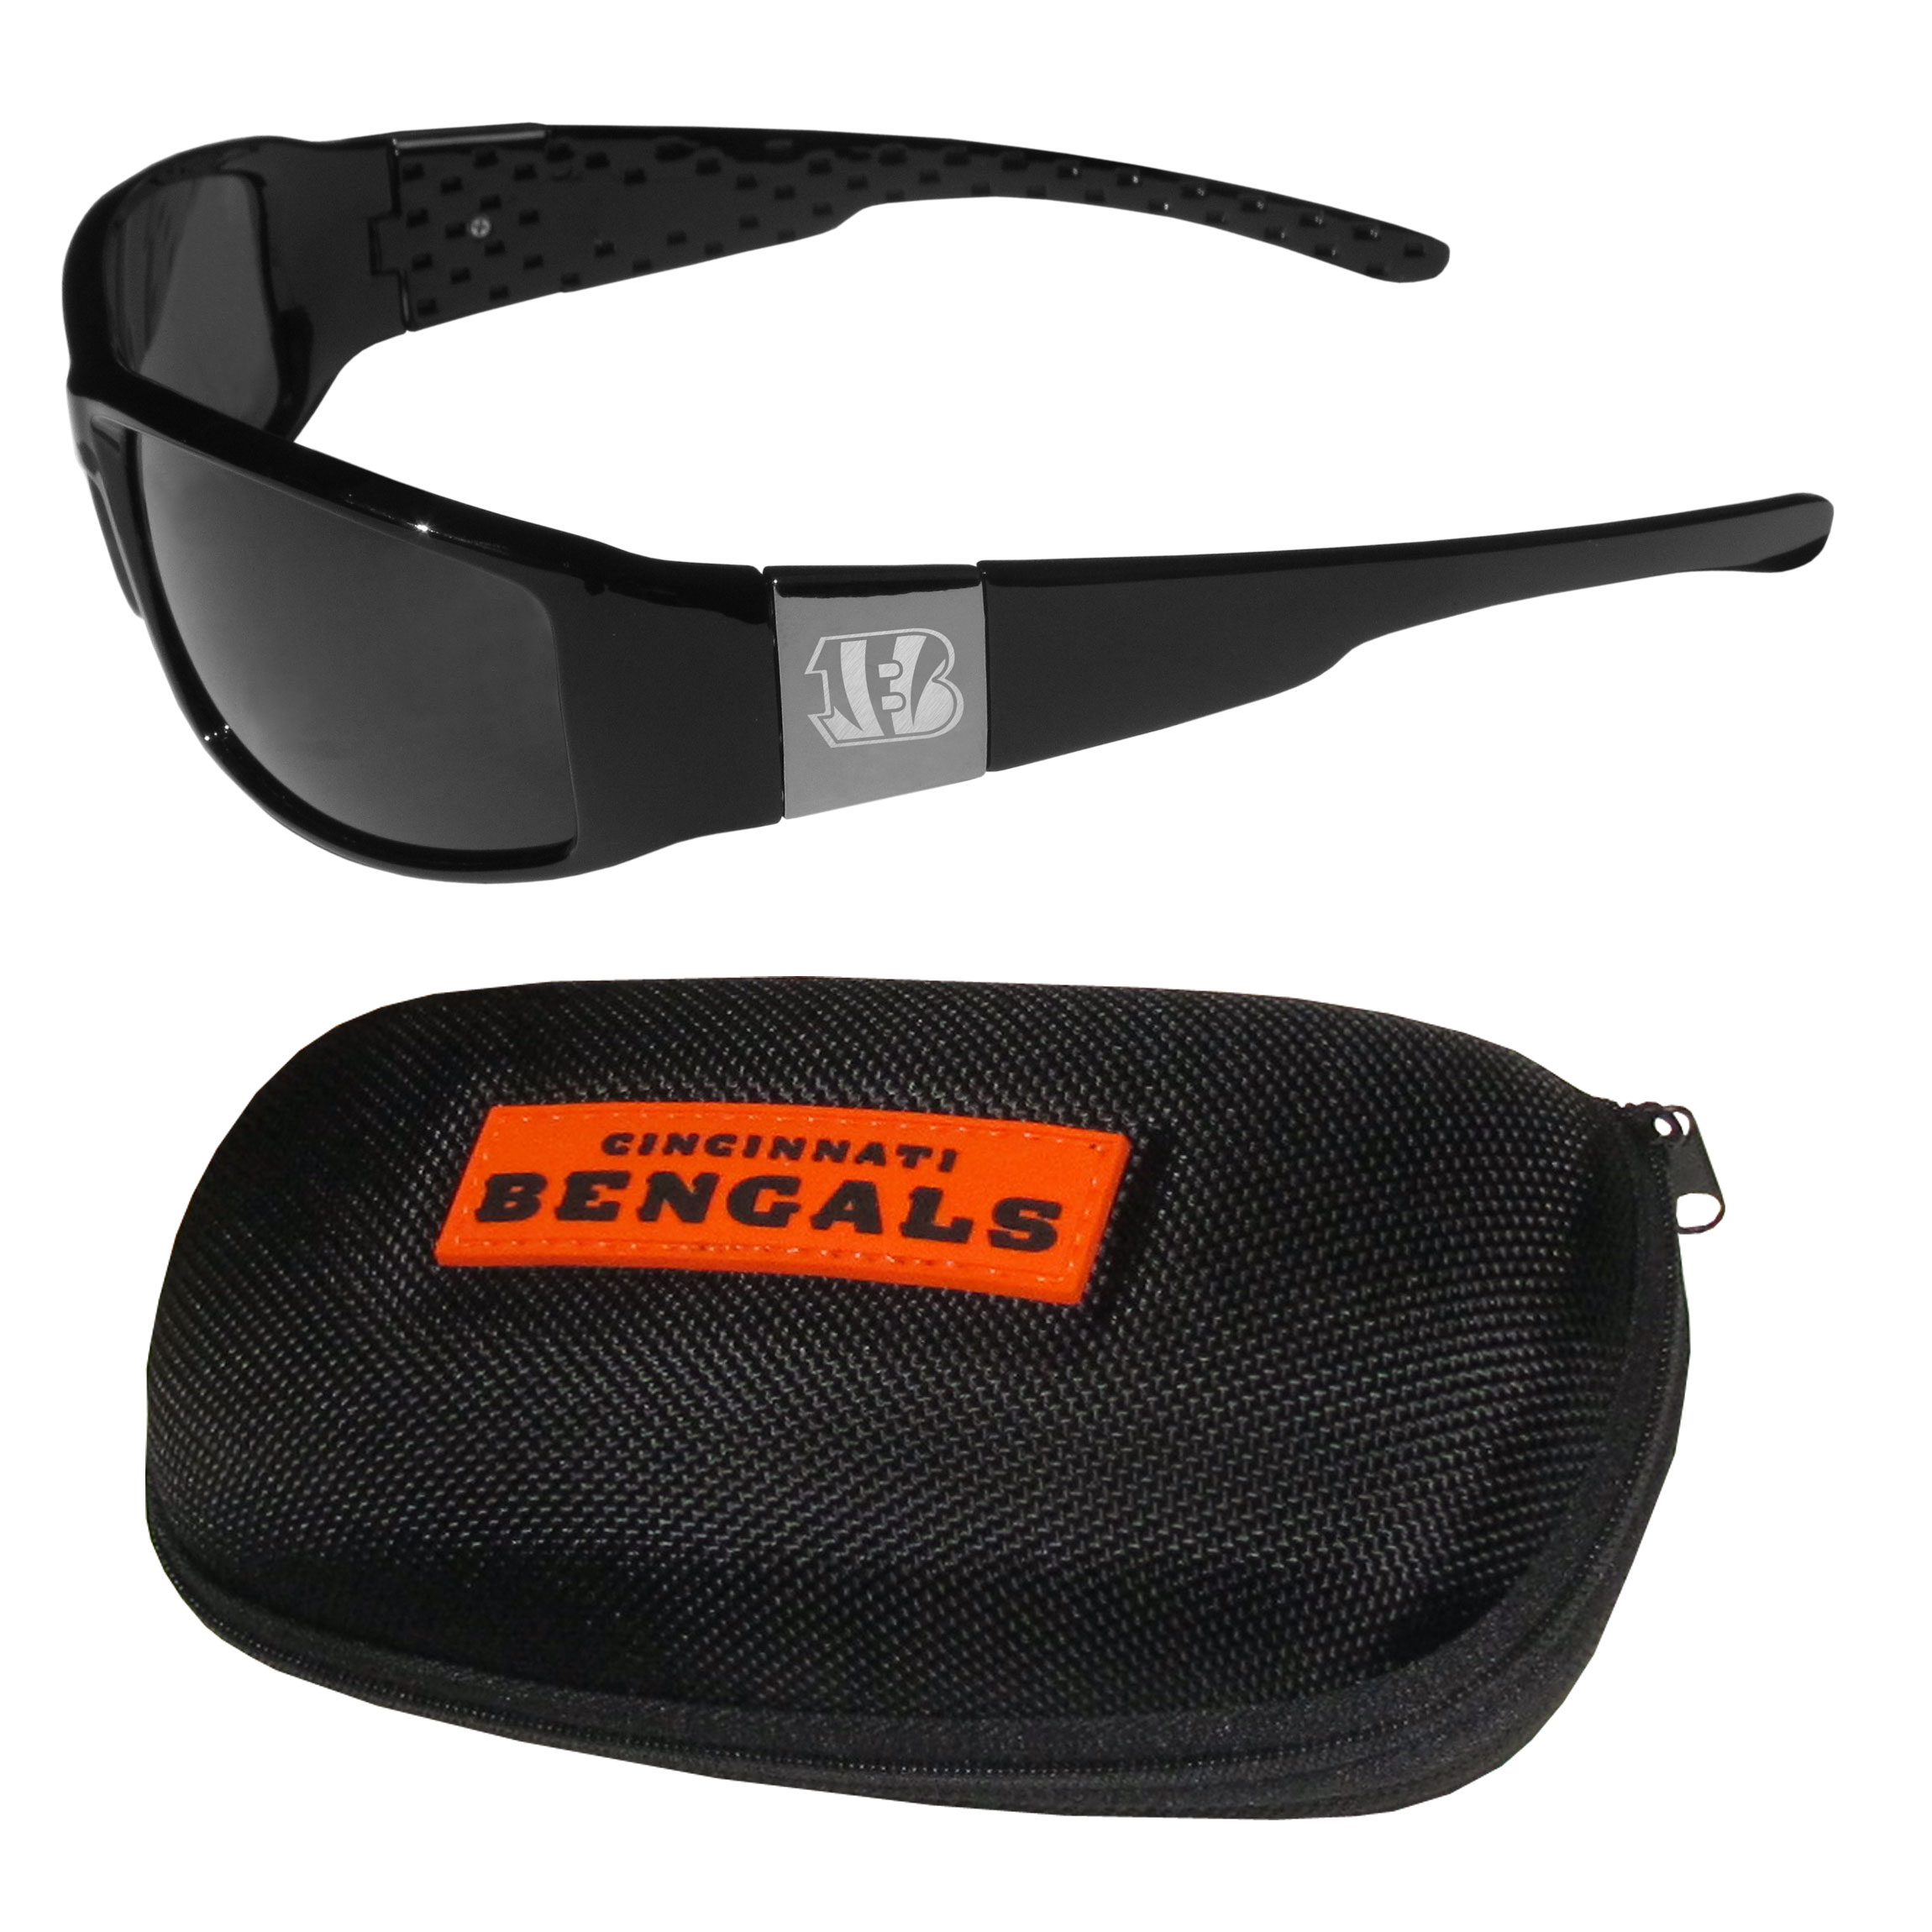 Cincinnati Bengals Chrome Wrap Sunglasses and Zippered Carrying Case - This set includes our sleek and stylish Cincinnati Bengals chrome wrap sunglasses and our hard shell, zippered carrying case. The sunglasses feature etched team logos on each arm and 100% UVA/UVB protection. The case features a large and colorful team emblem.